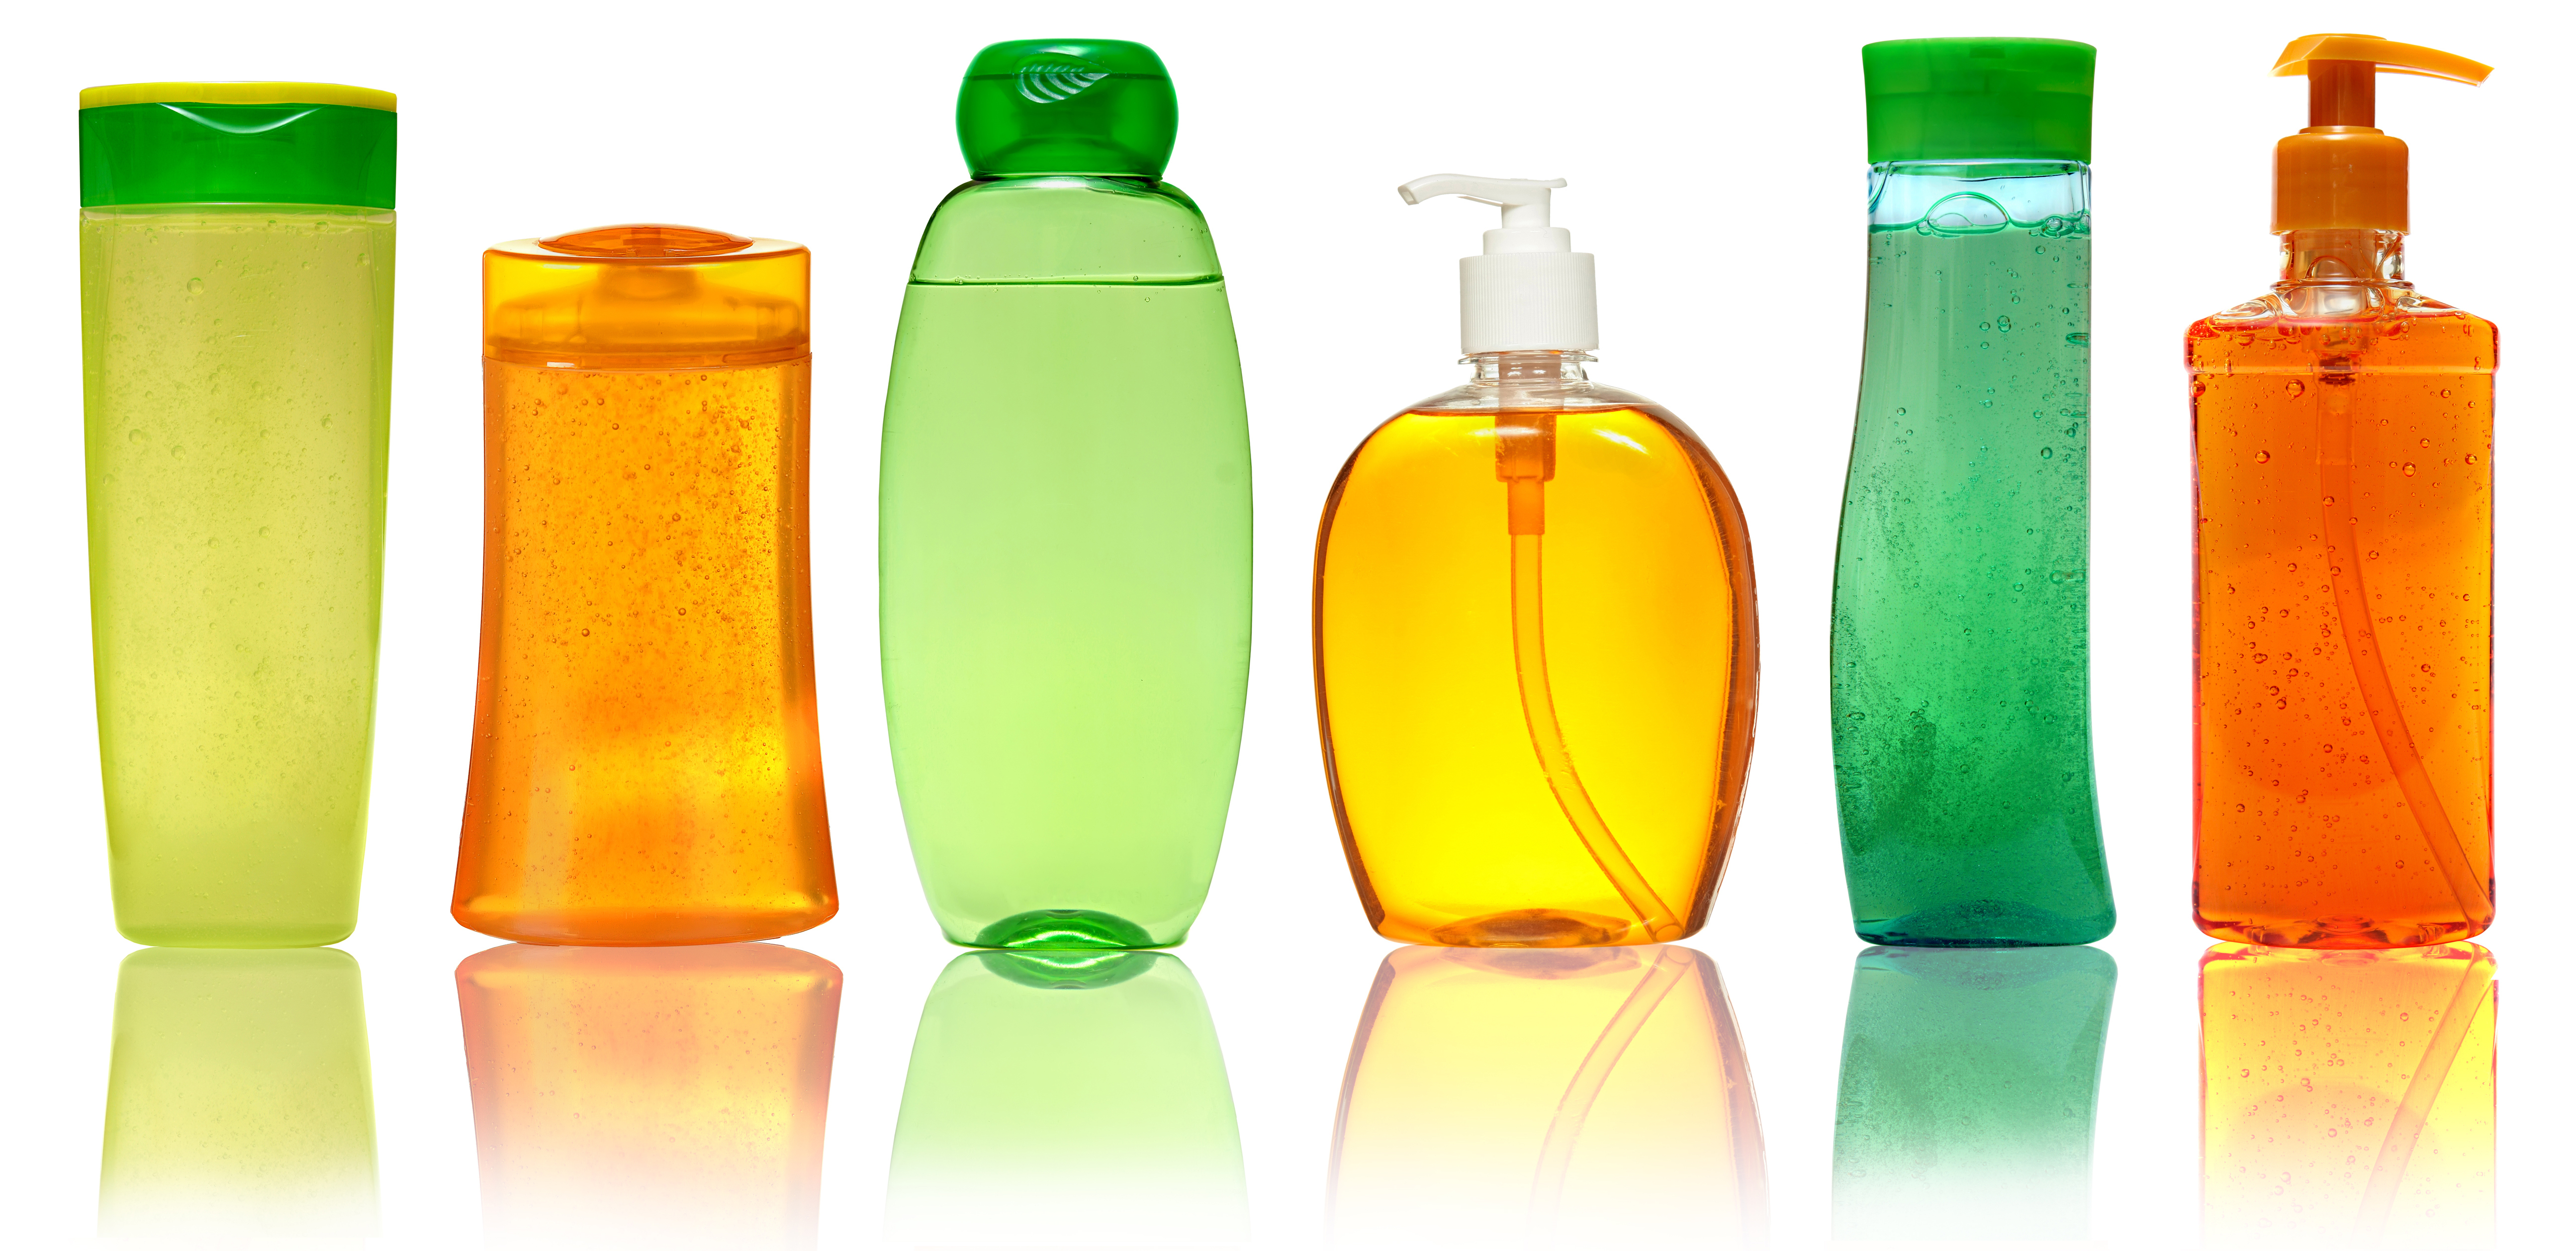 Liquids in hand luggage: What can you carry? | Skyscanner's